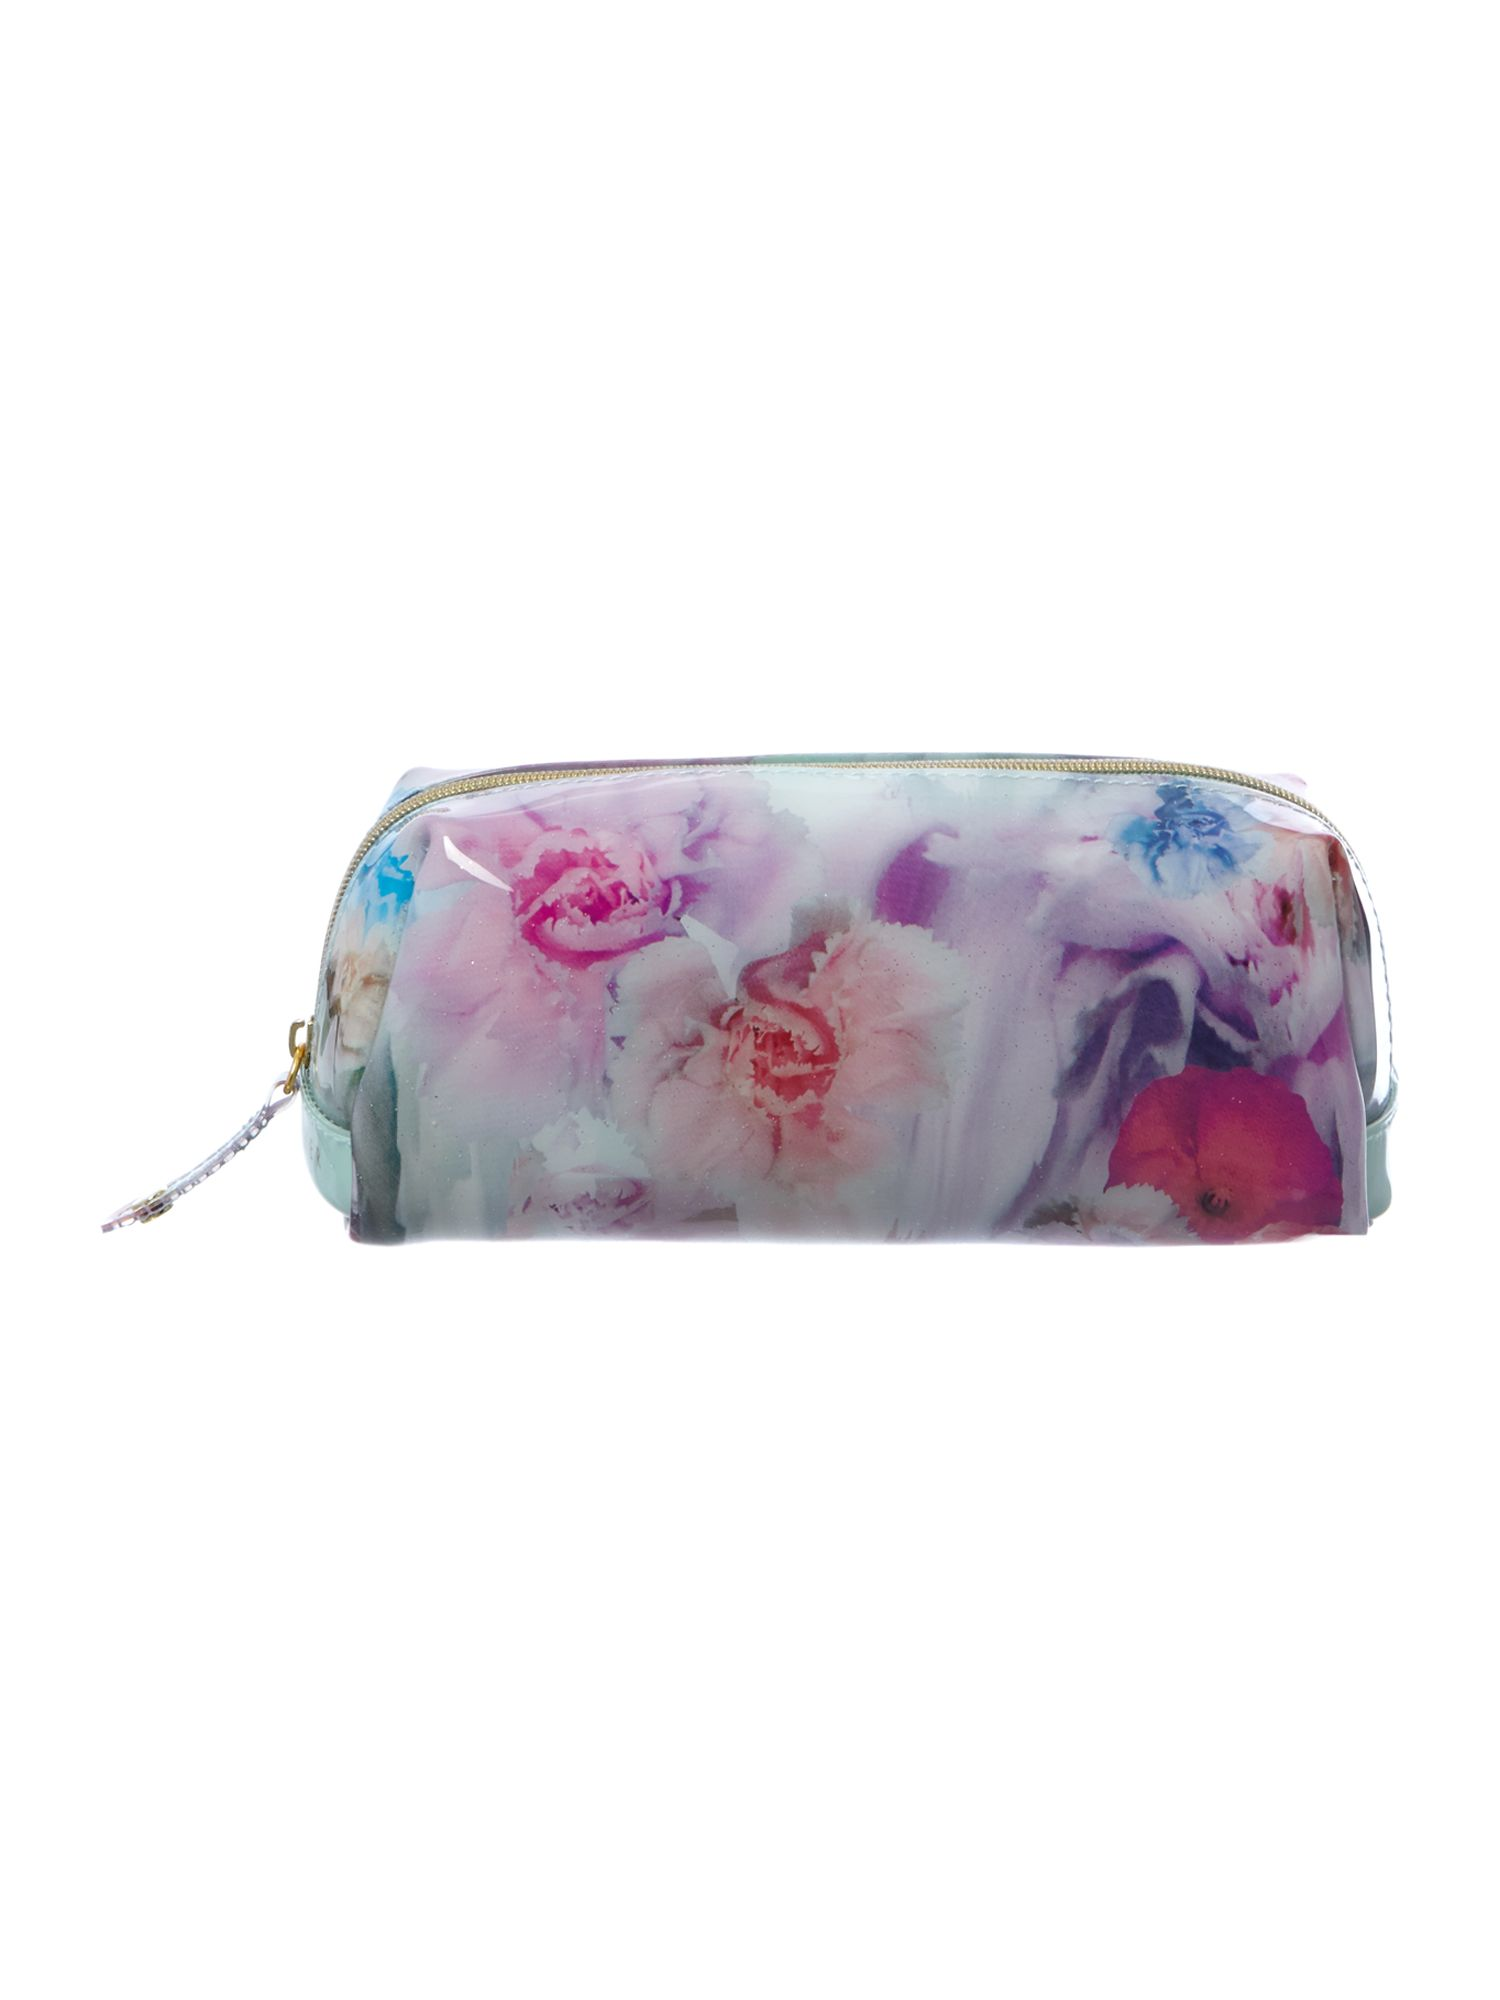 Small multi coloured cosmetic bag